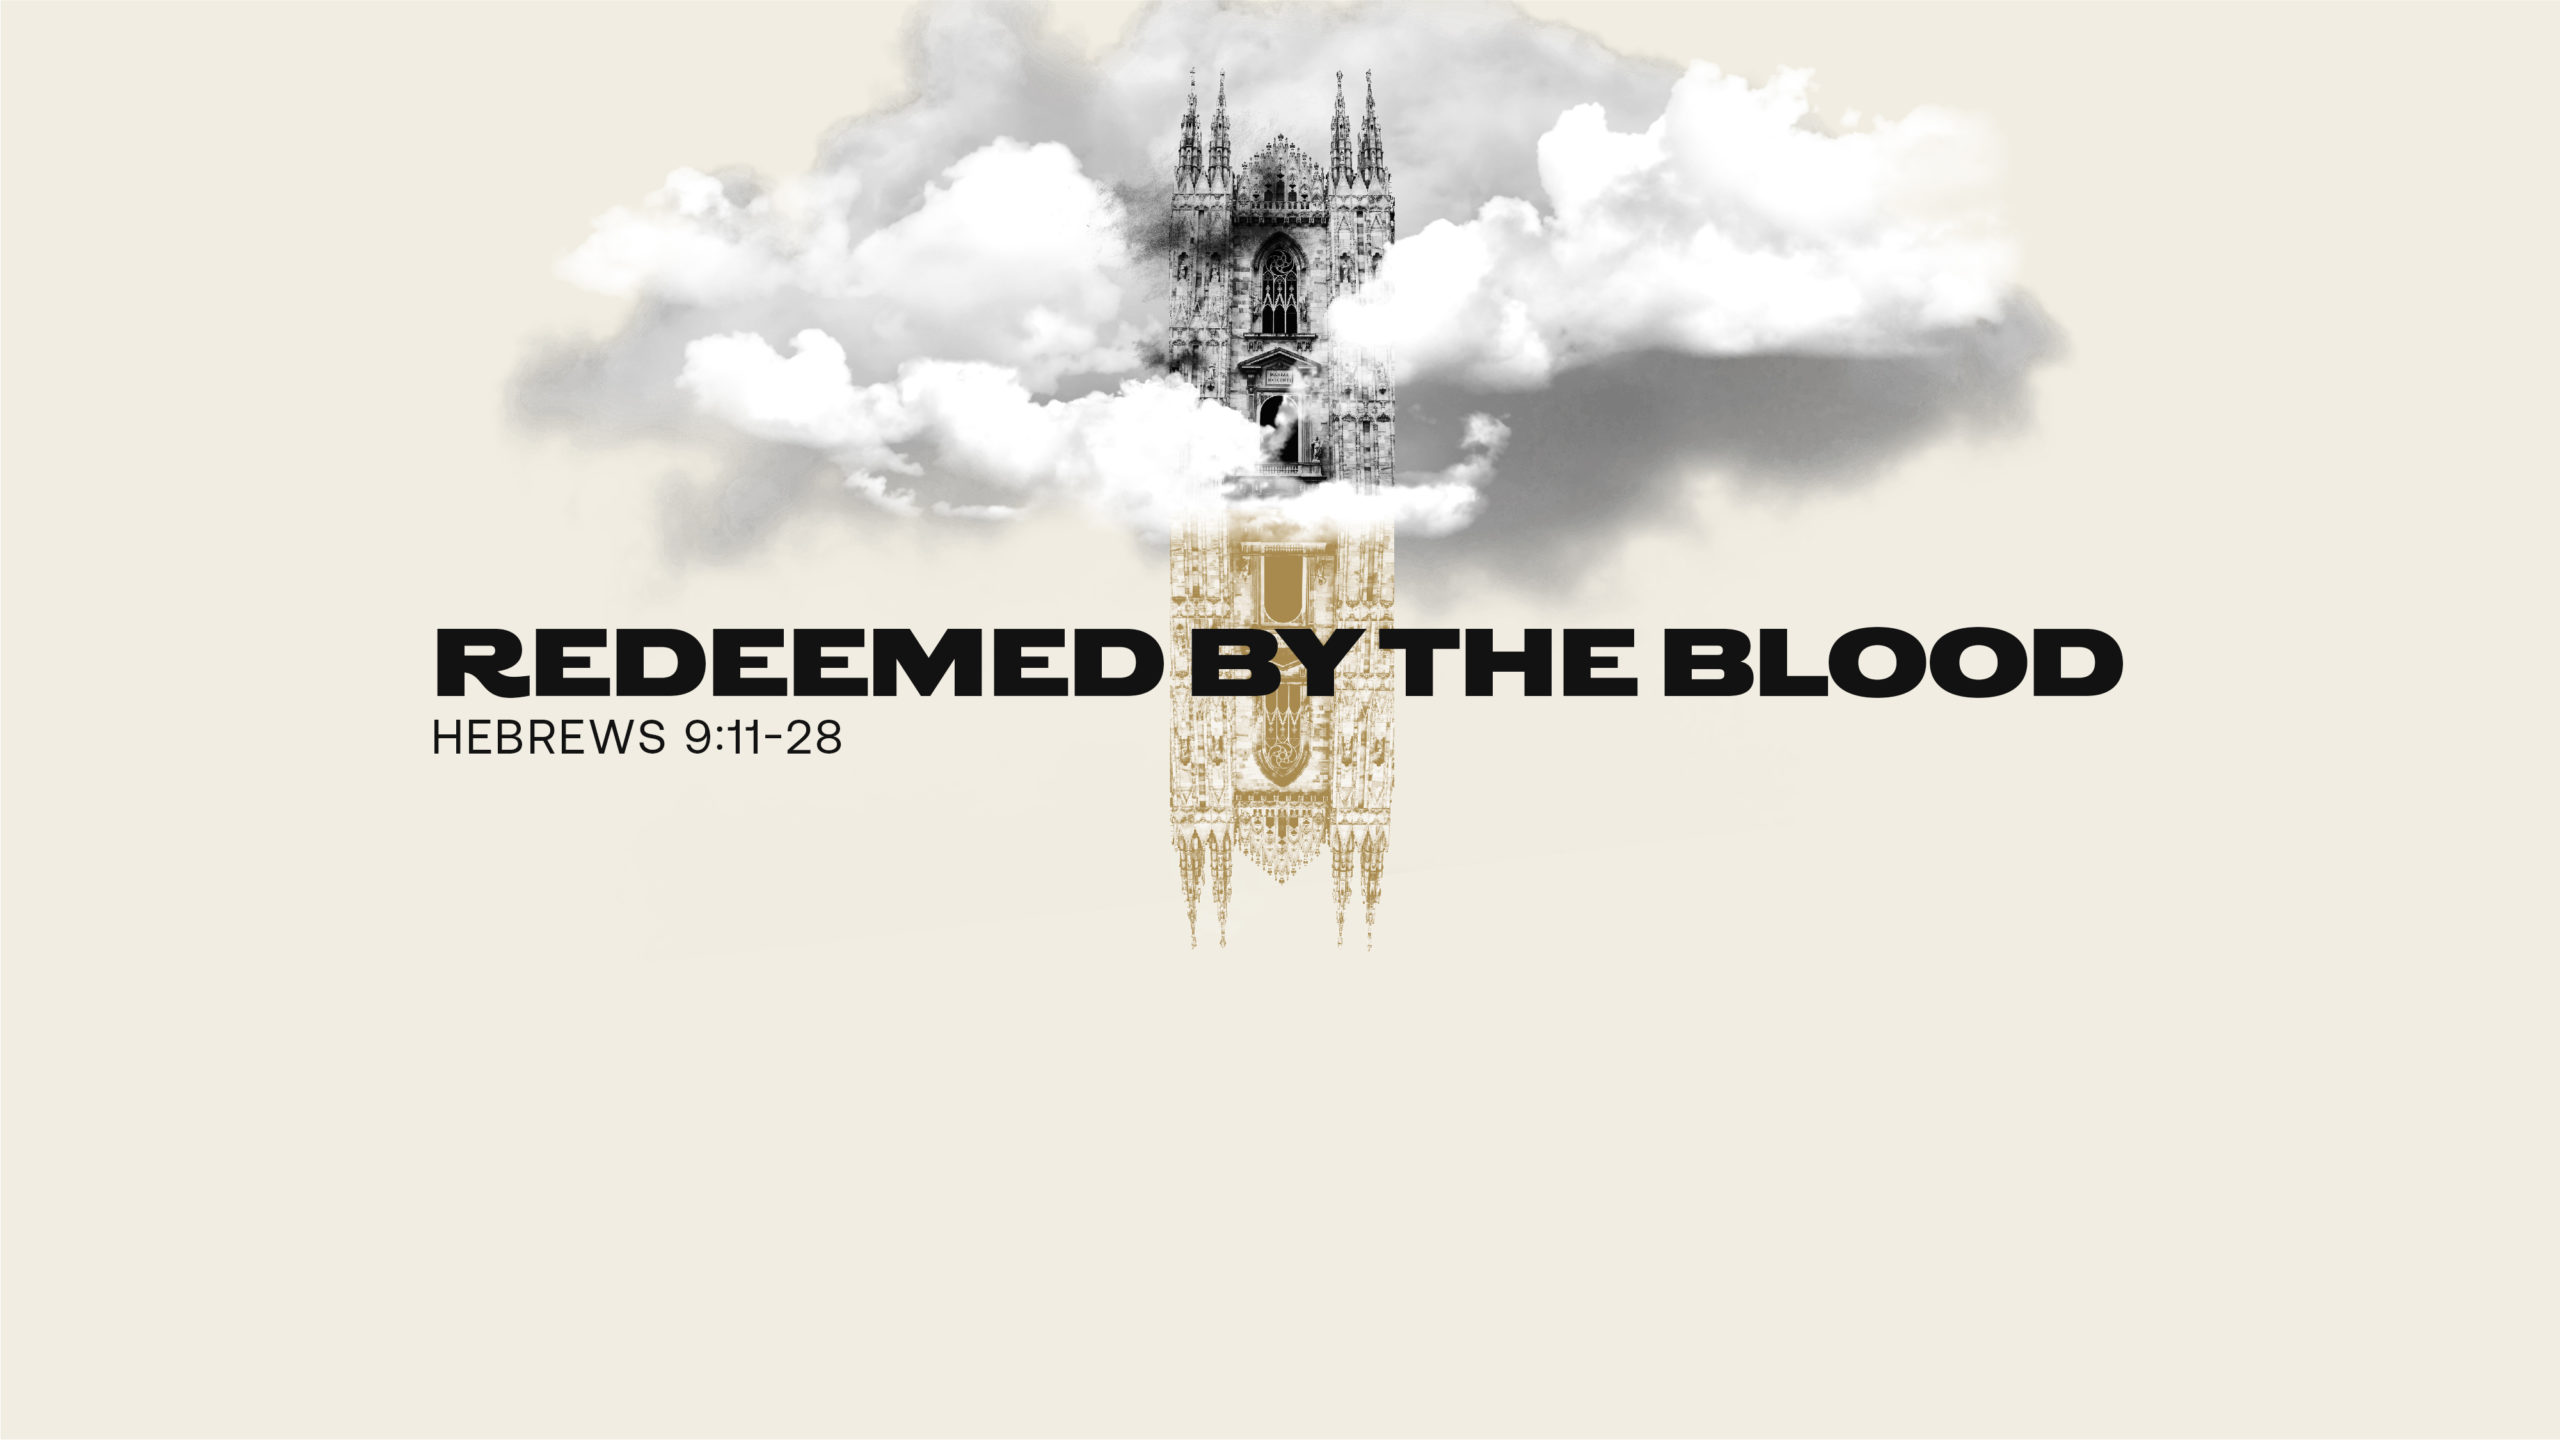 Redeemed by the Blood